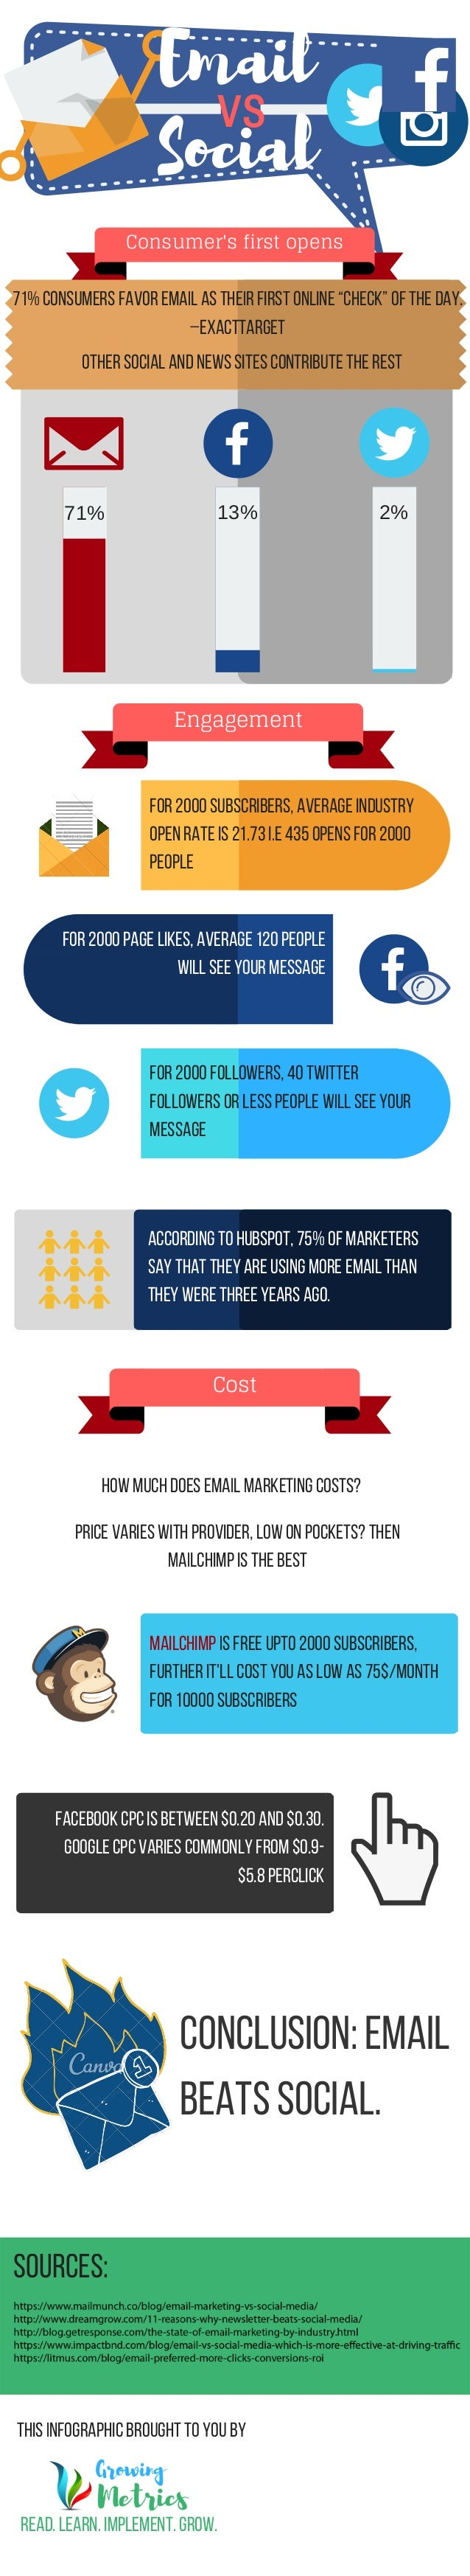 Email vs Social 71% 13% 2% Consumer's first opens other social and news sites contribute the rest 71%consumers favor email...